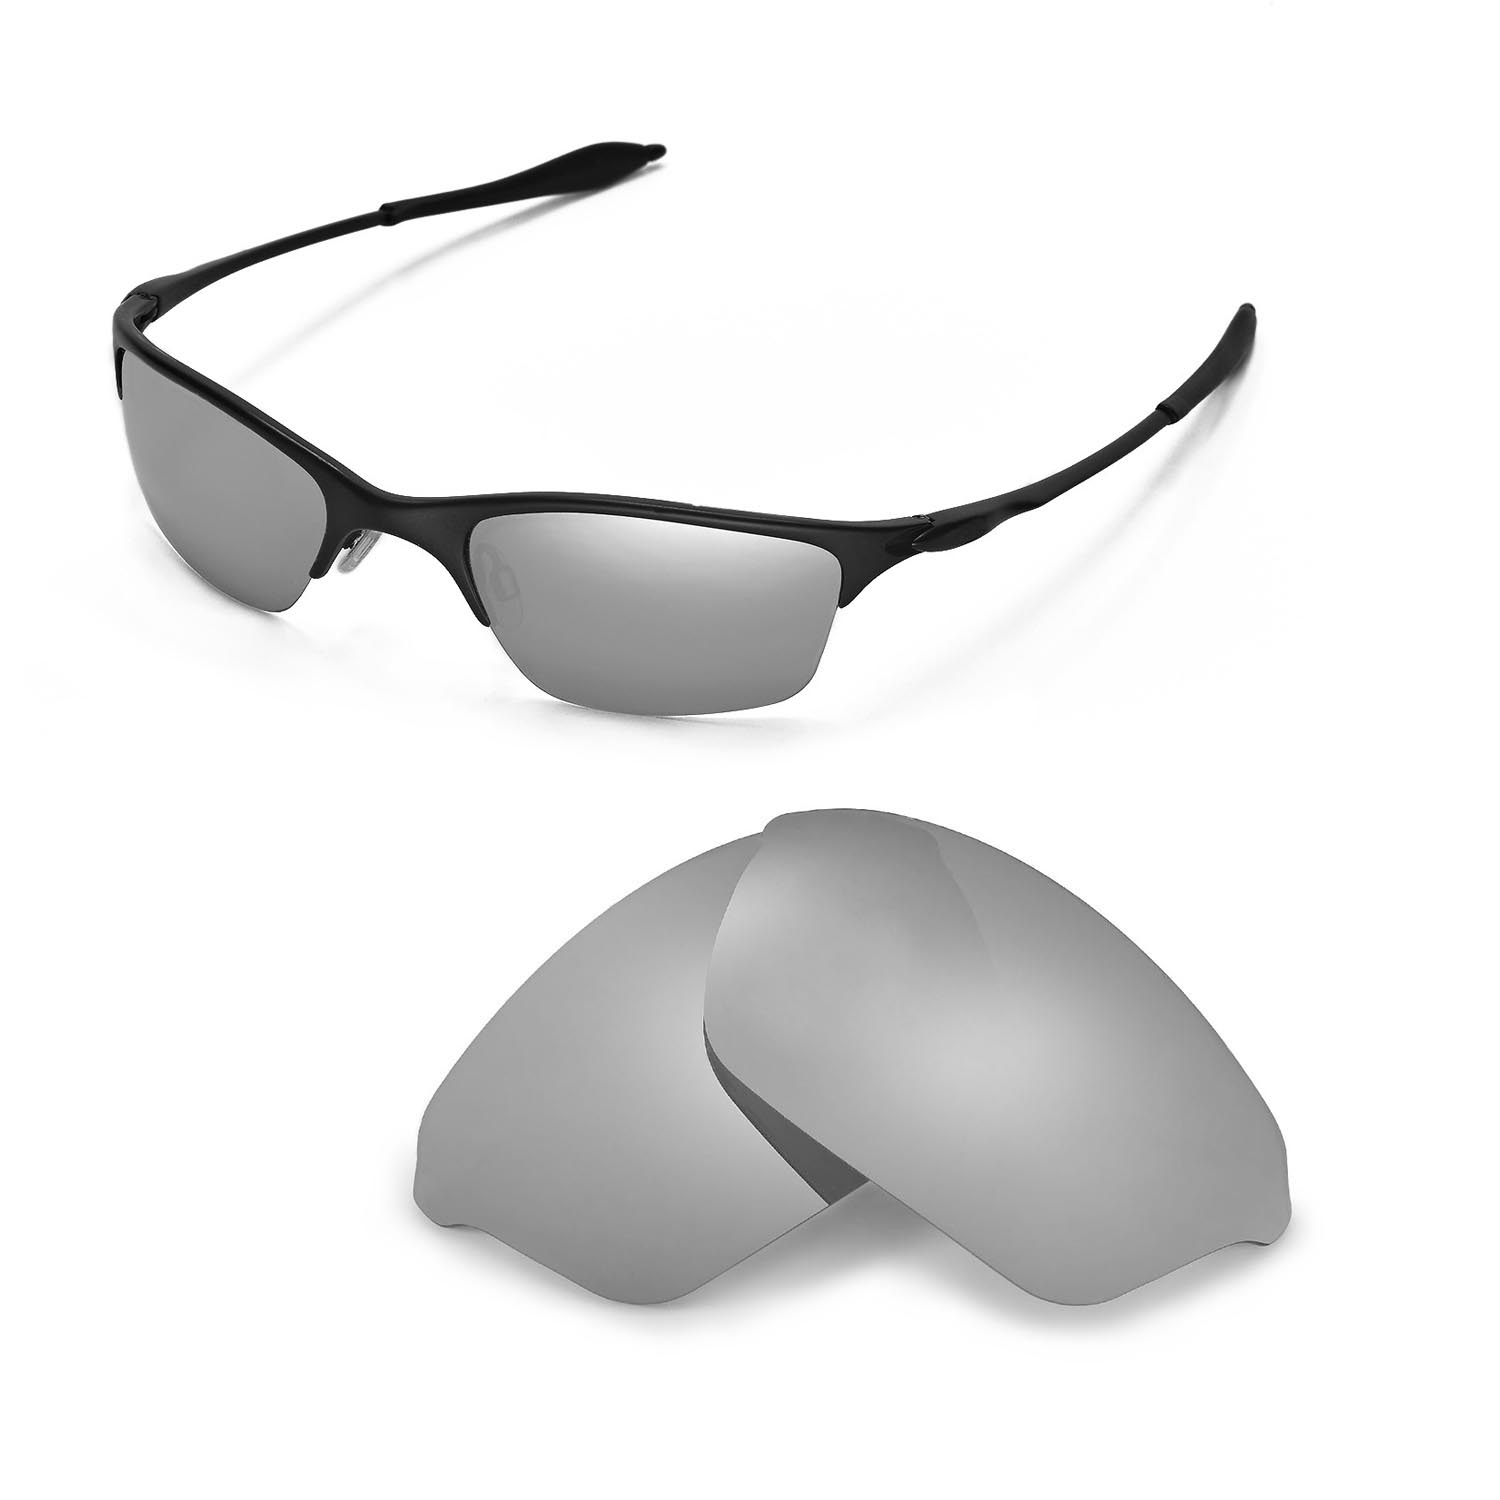 New WL Polarized Titanium Replacement Lenses For Oakley Half Wire XL ...